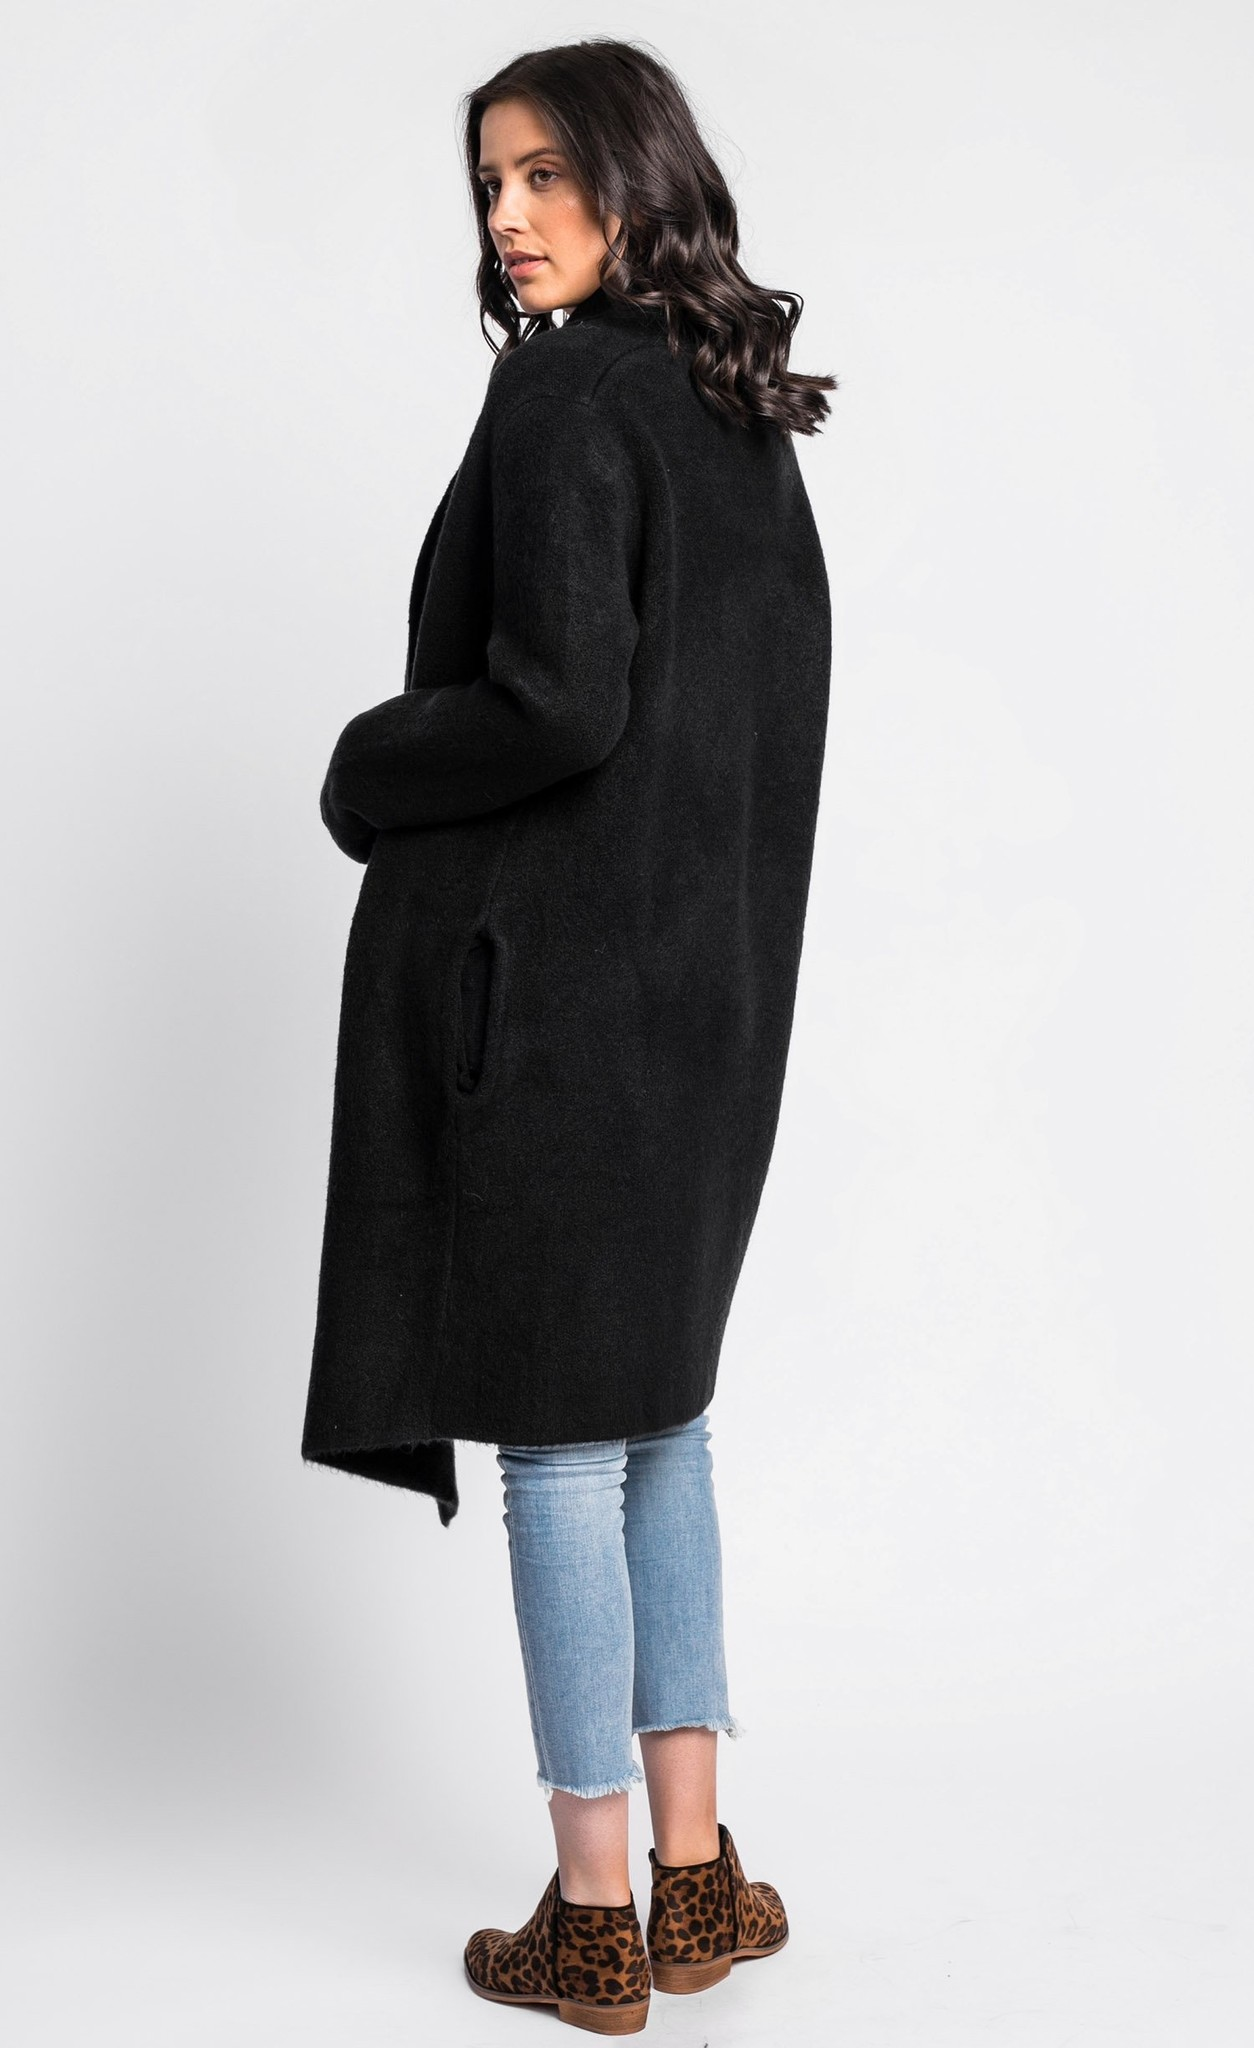 Pink Martini Stockport Coat - BLACK